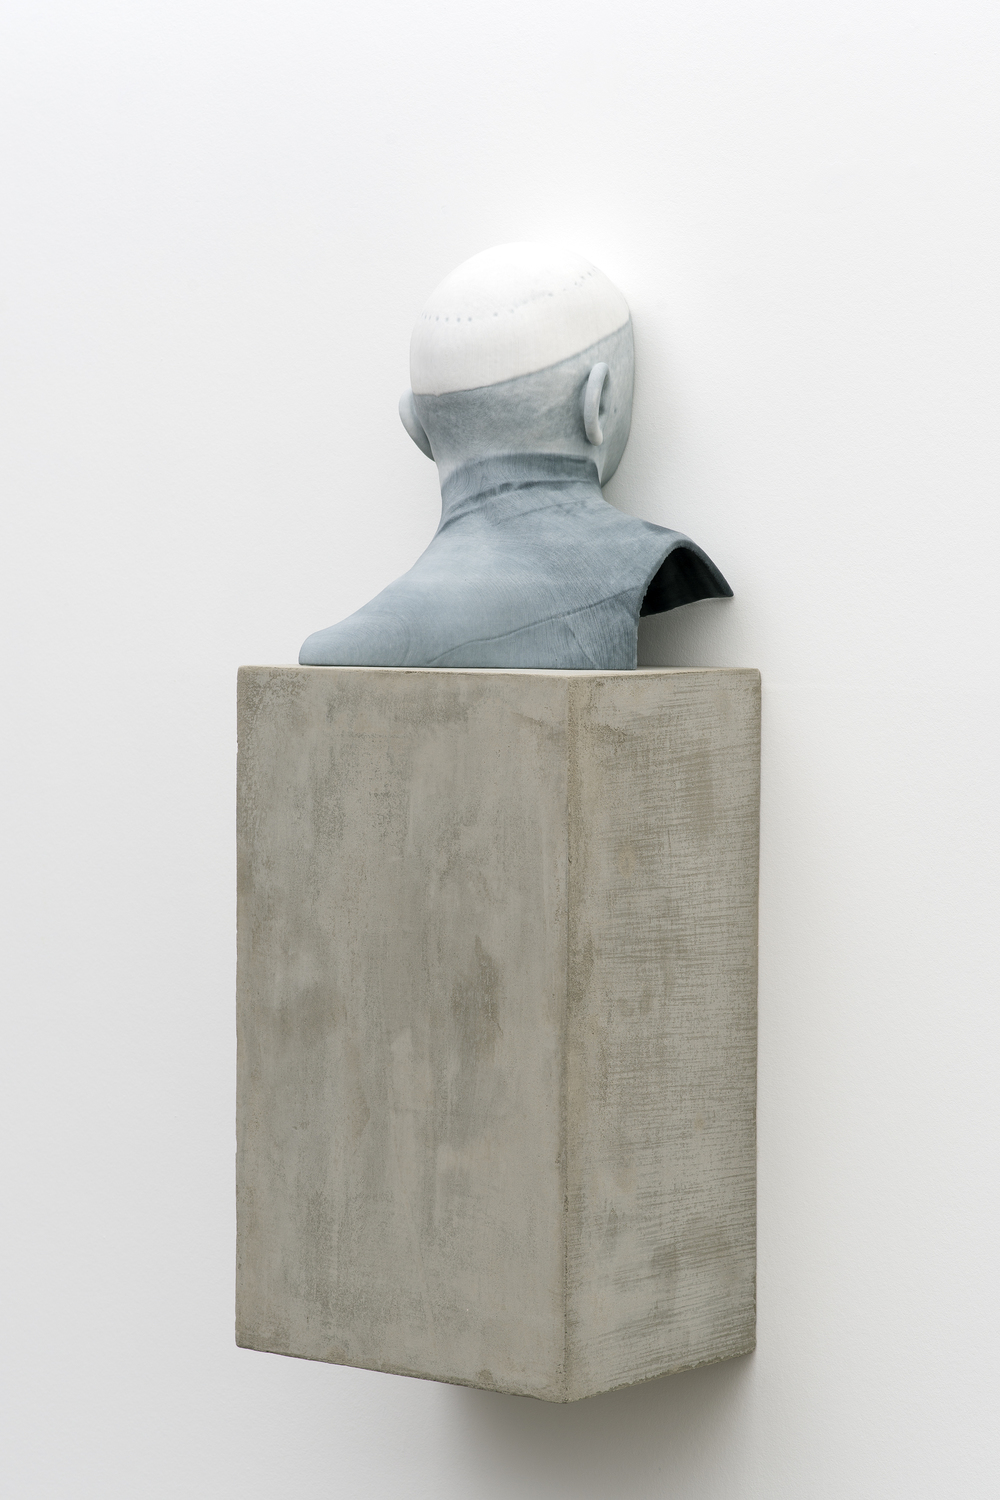 Man of Words (3) 2014 Pigmented plaster ZPrint, concrete  32.25 x 12 x 9 inches